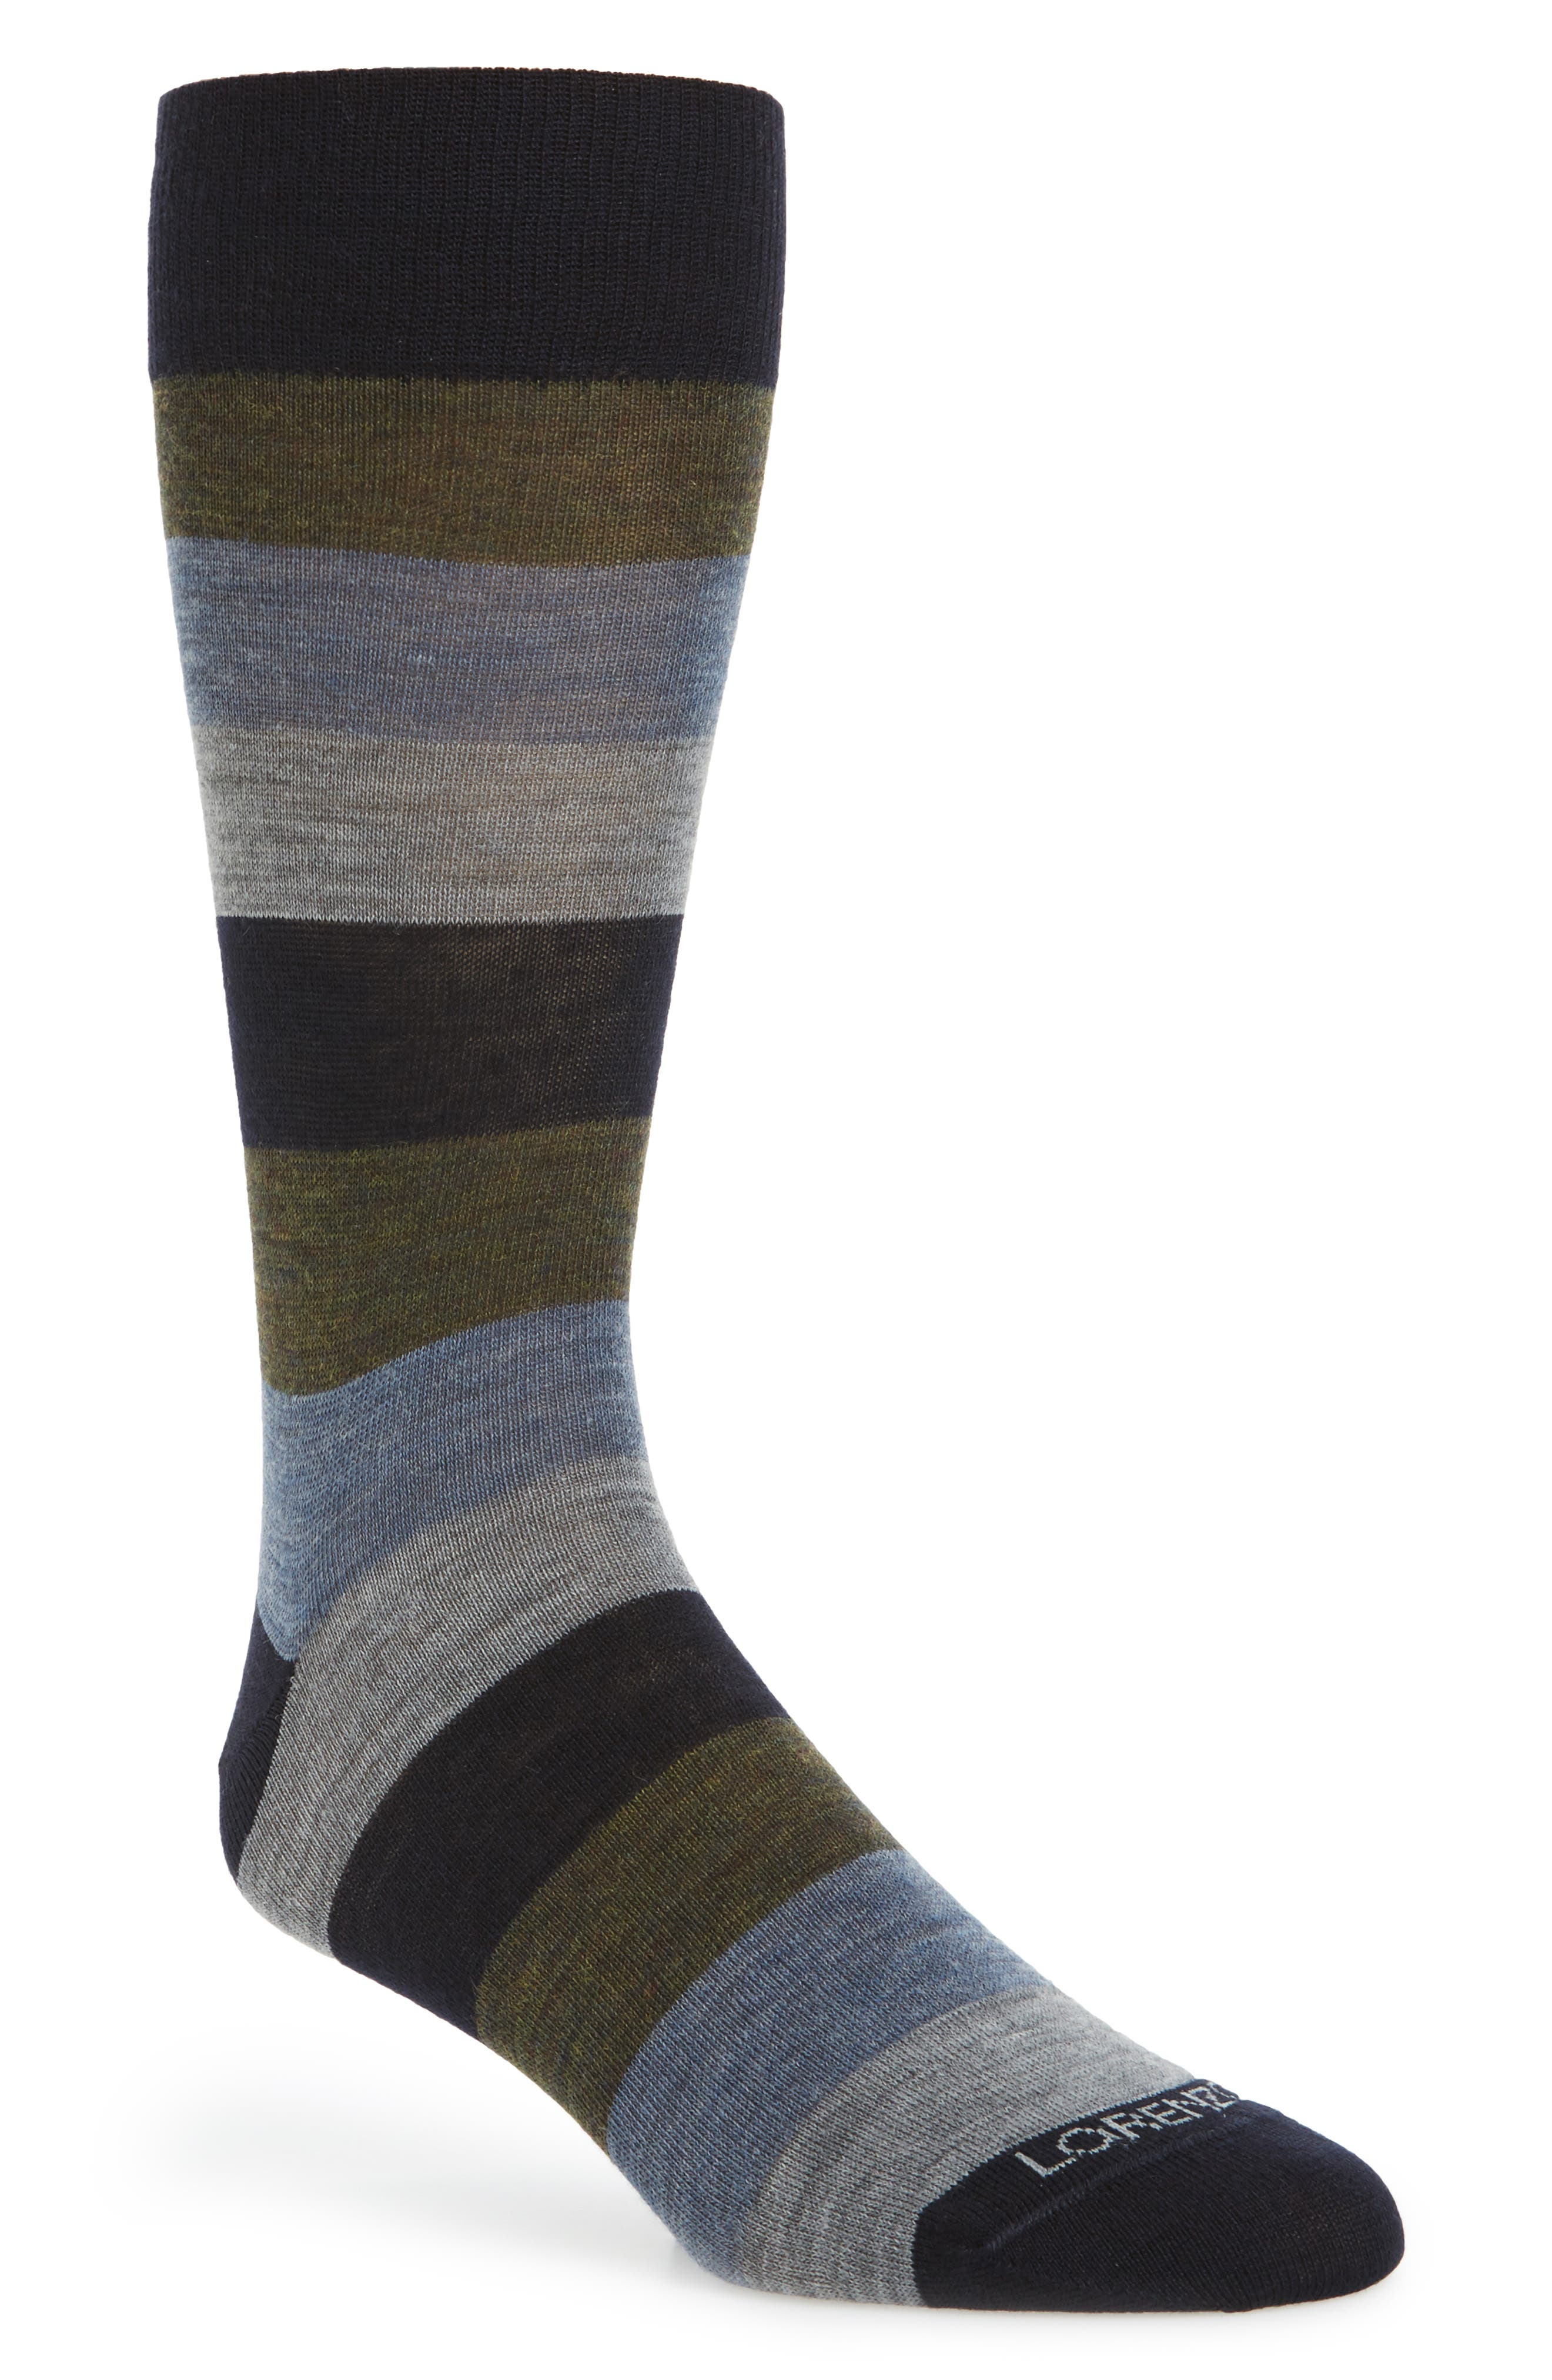 Lorenzo Uomo Colorblock Socks